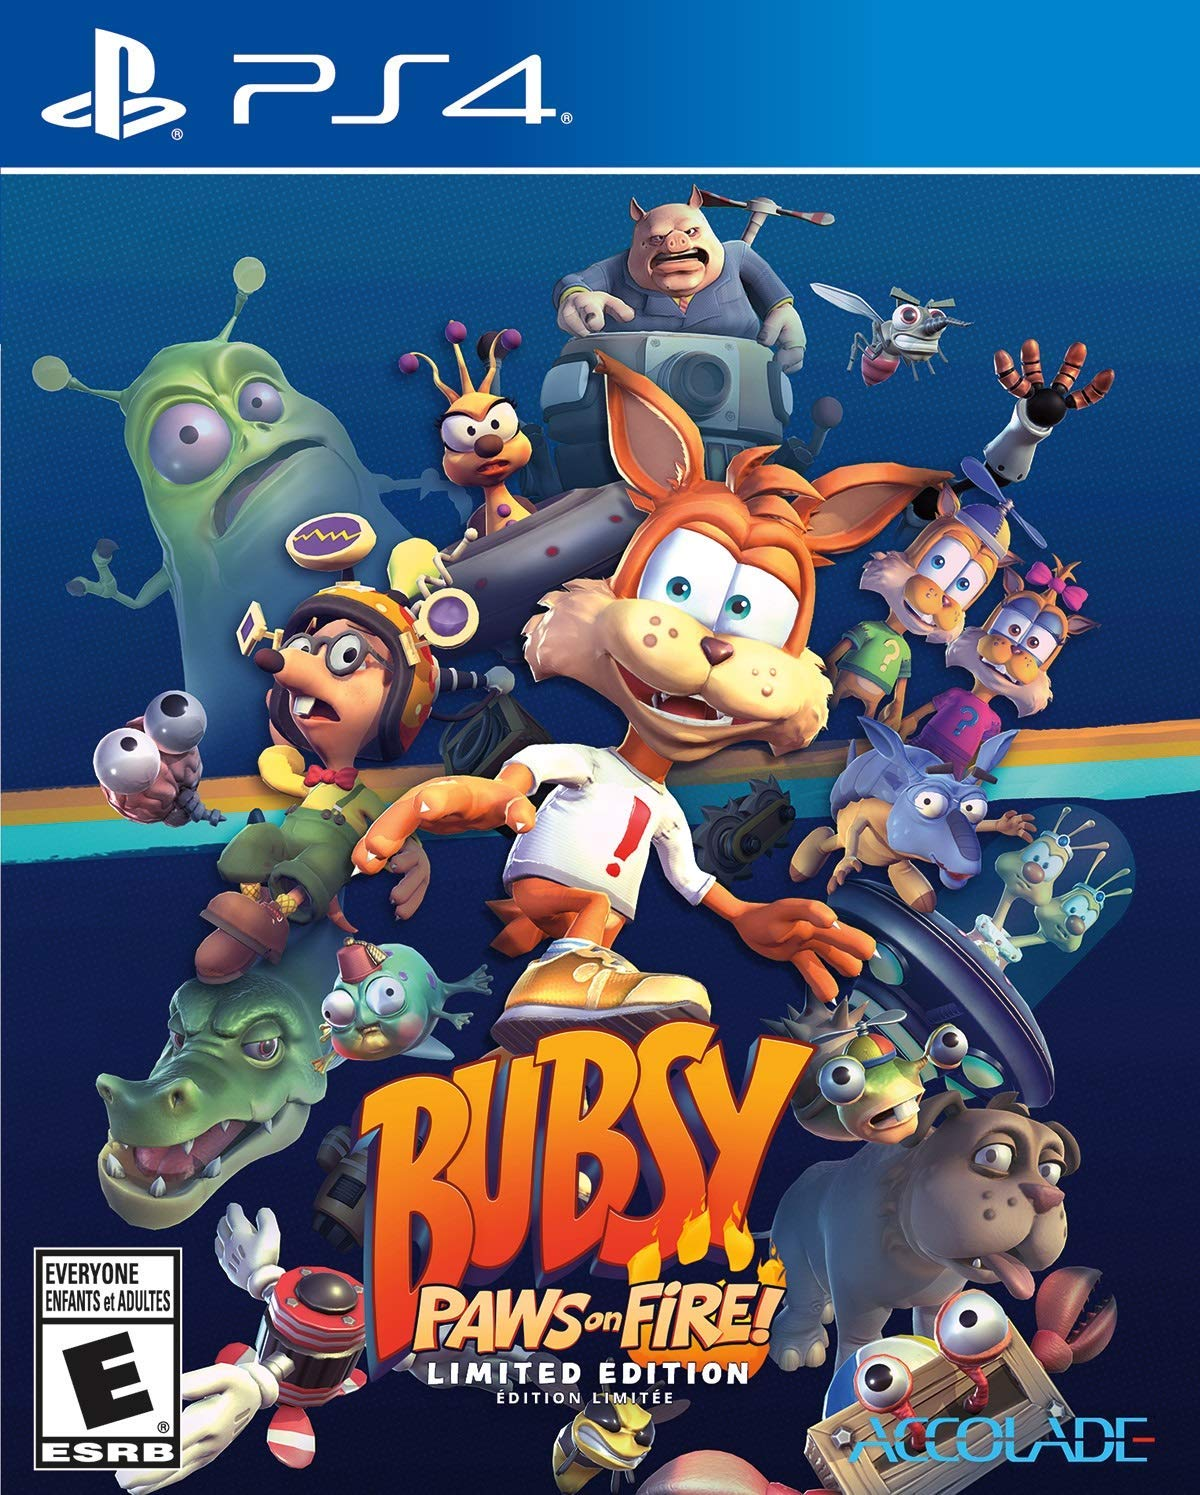 Bubsy: Paws On Fire! Limited Edition - PS4 $14.99